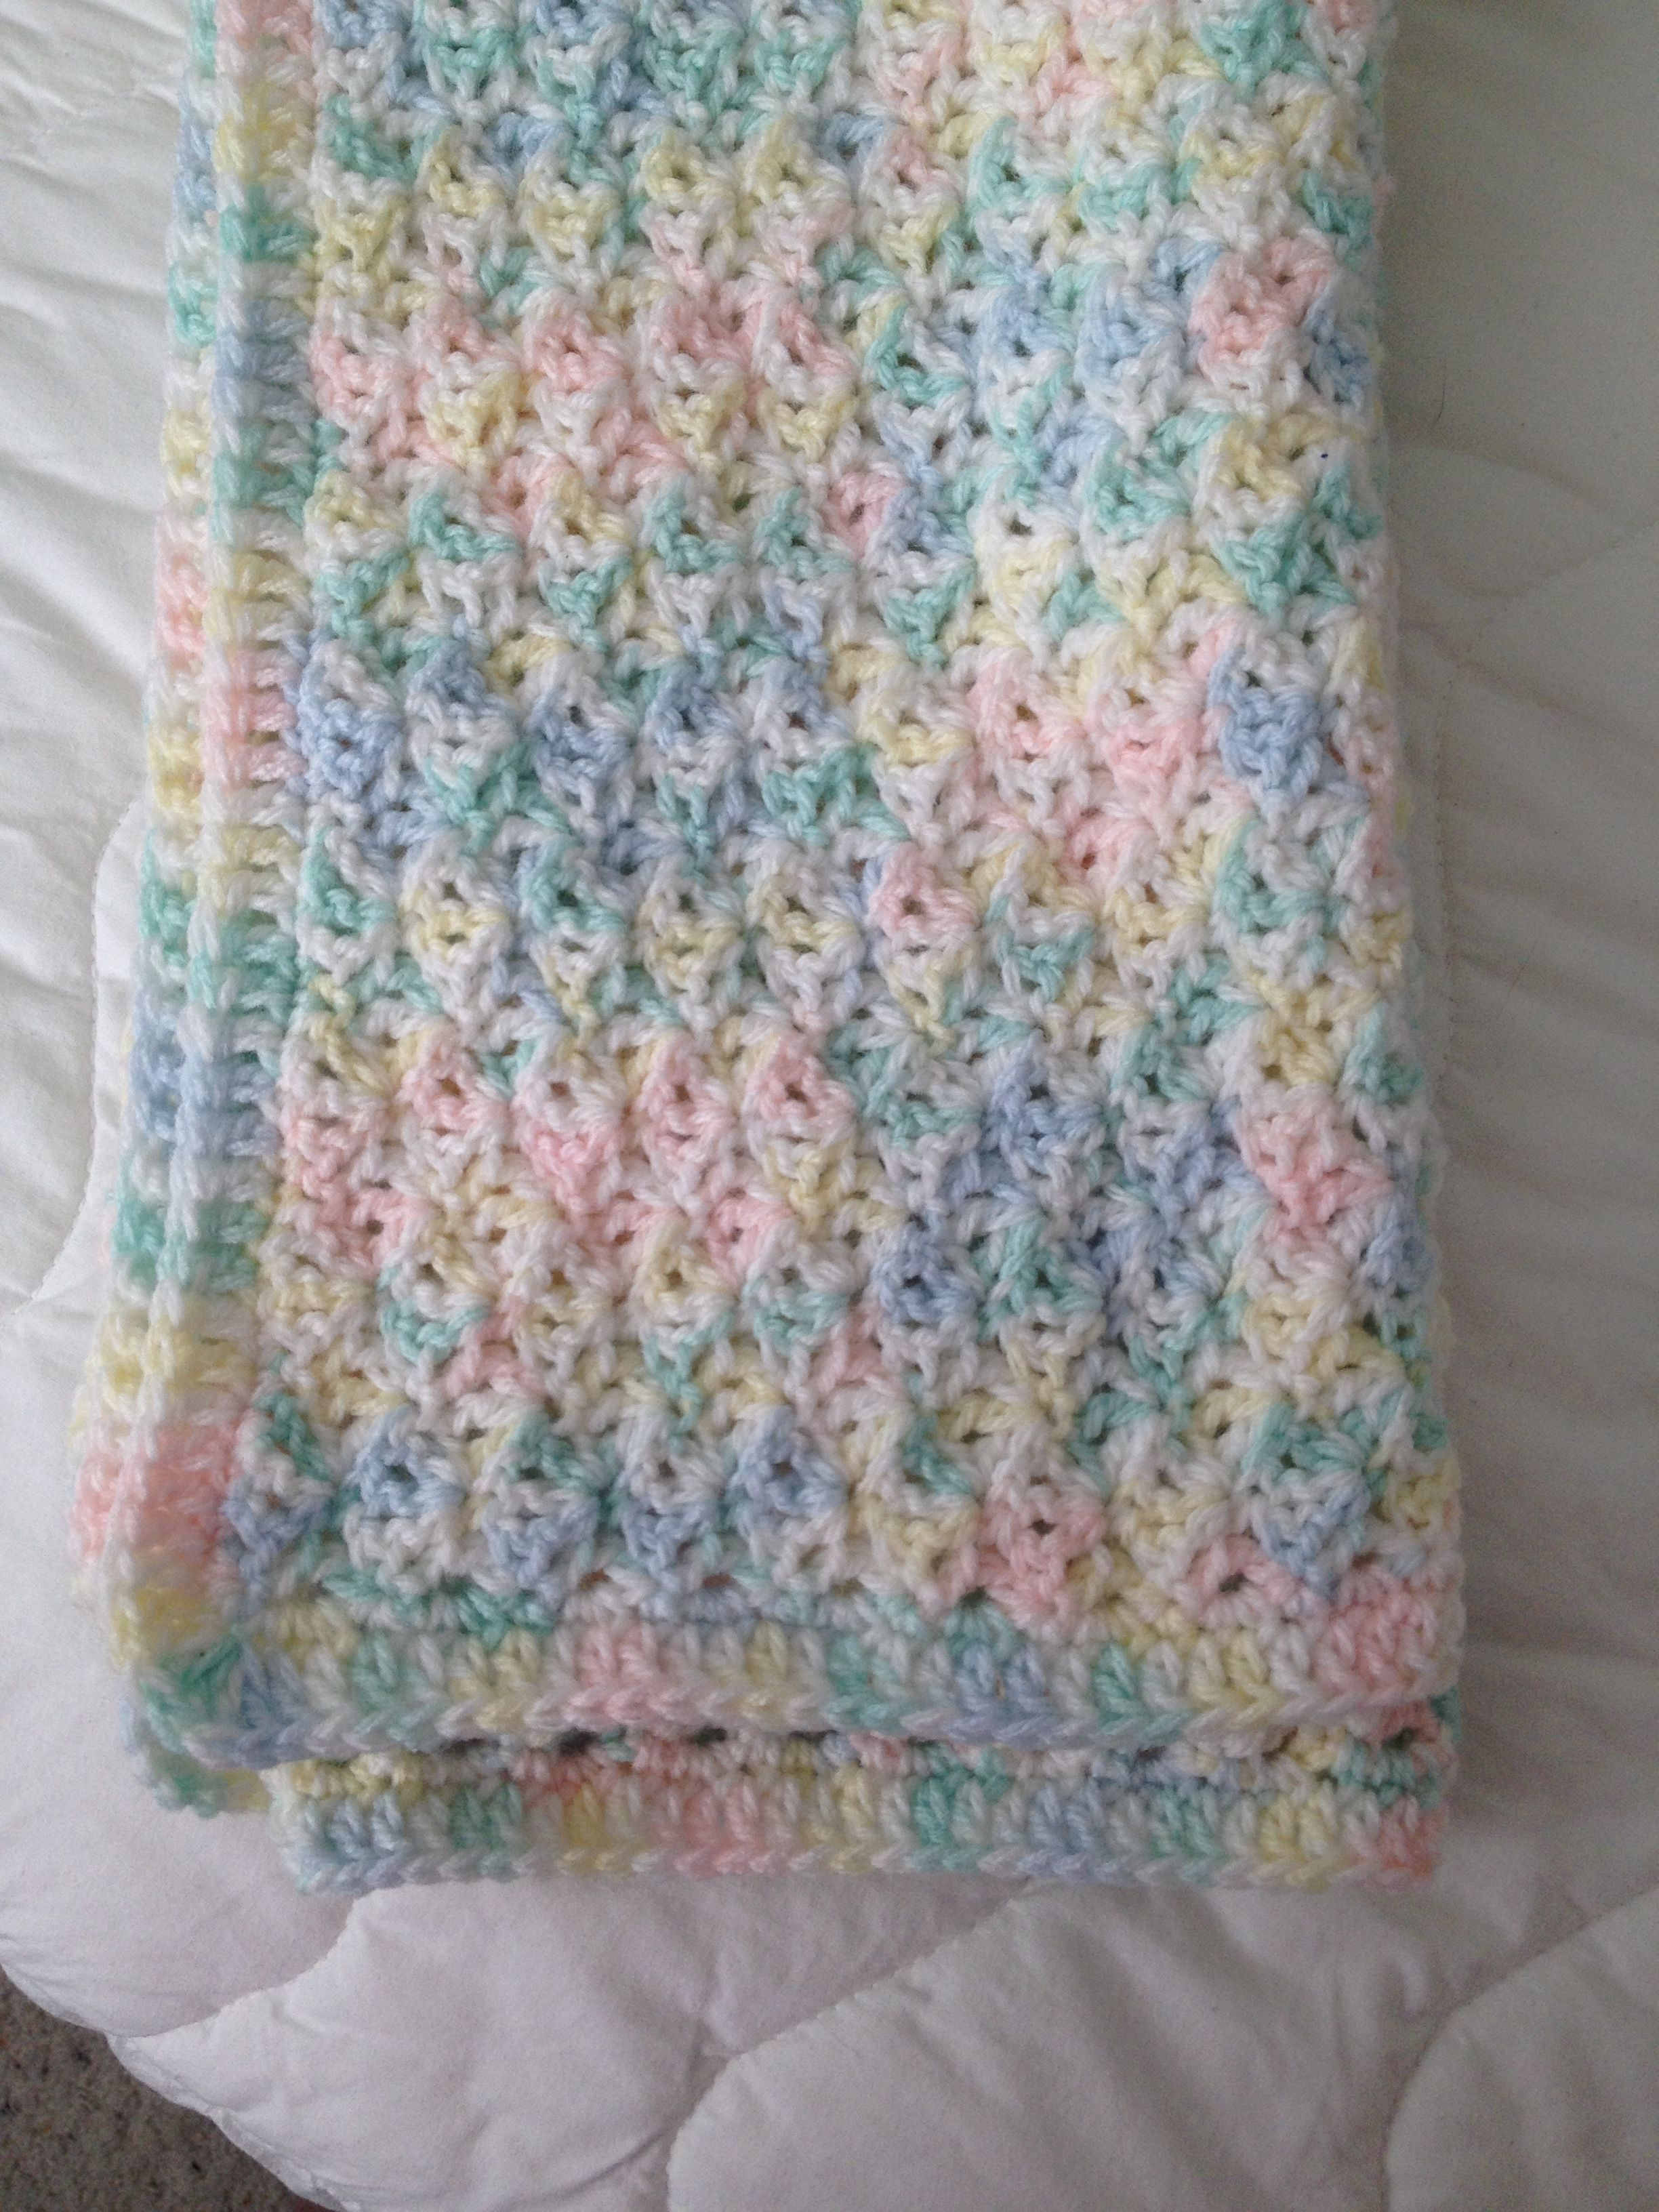 ce926de865 Baby blanket using Loops and Threads Snuggly Wuggly yarn